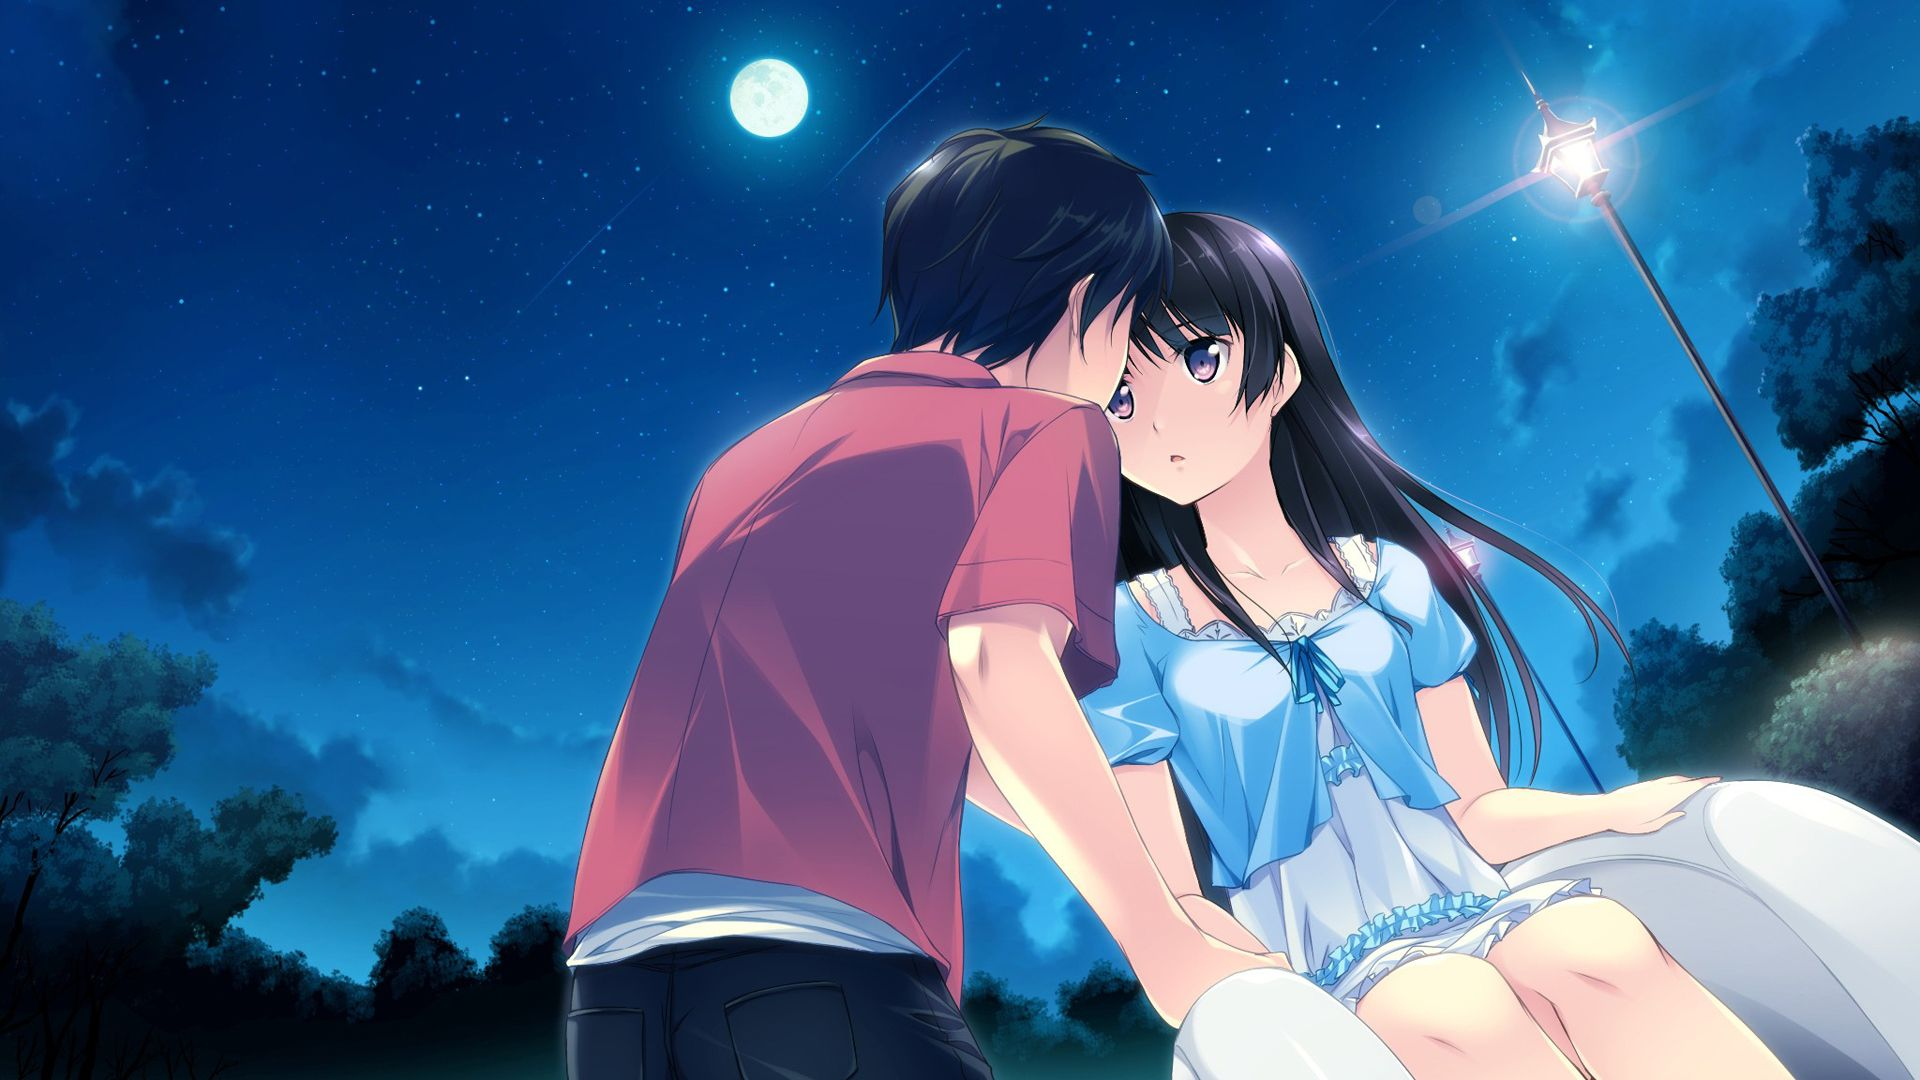 Love couple Animated Wallpaper Hd : Download Valentines Anime Wallpaper 1920x1080 Full HD ...